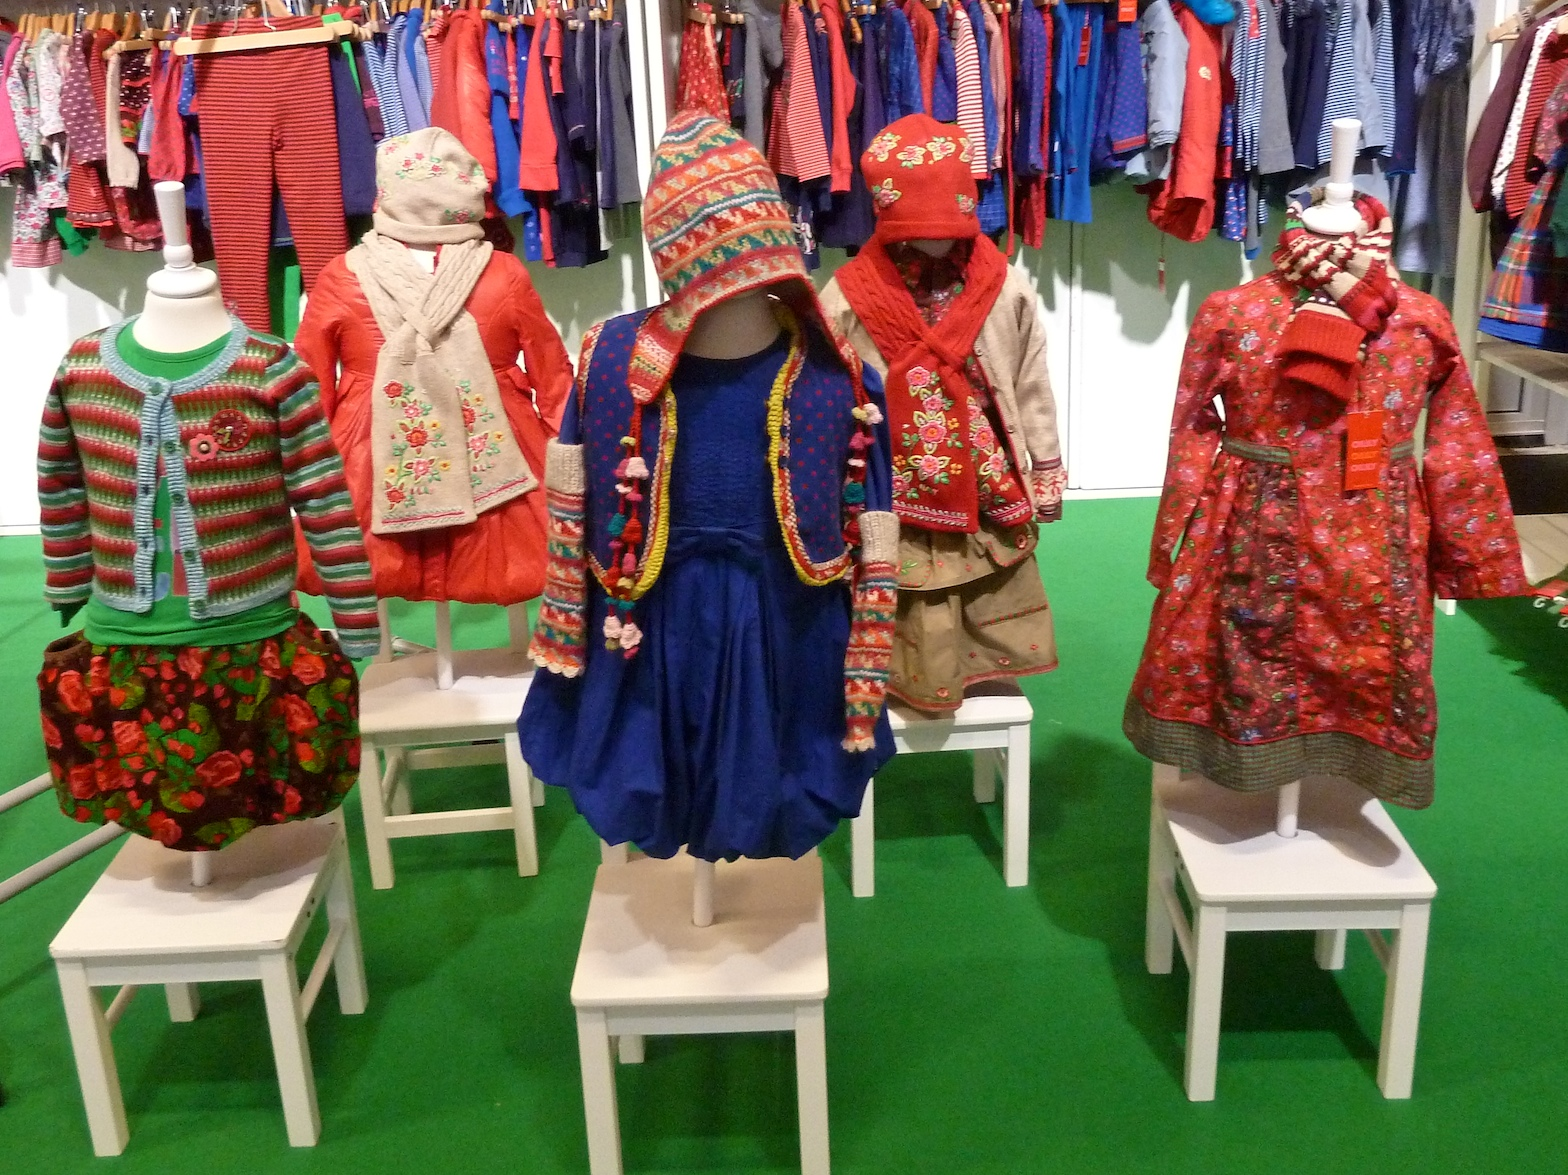 Oilily children's fashion is super bright for winter 2011